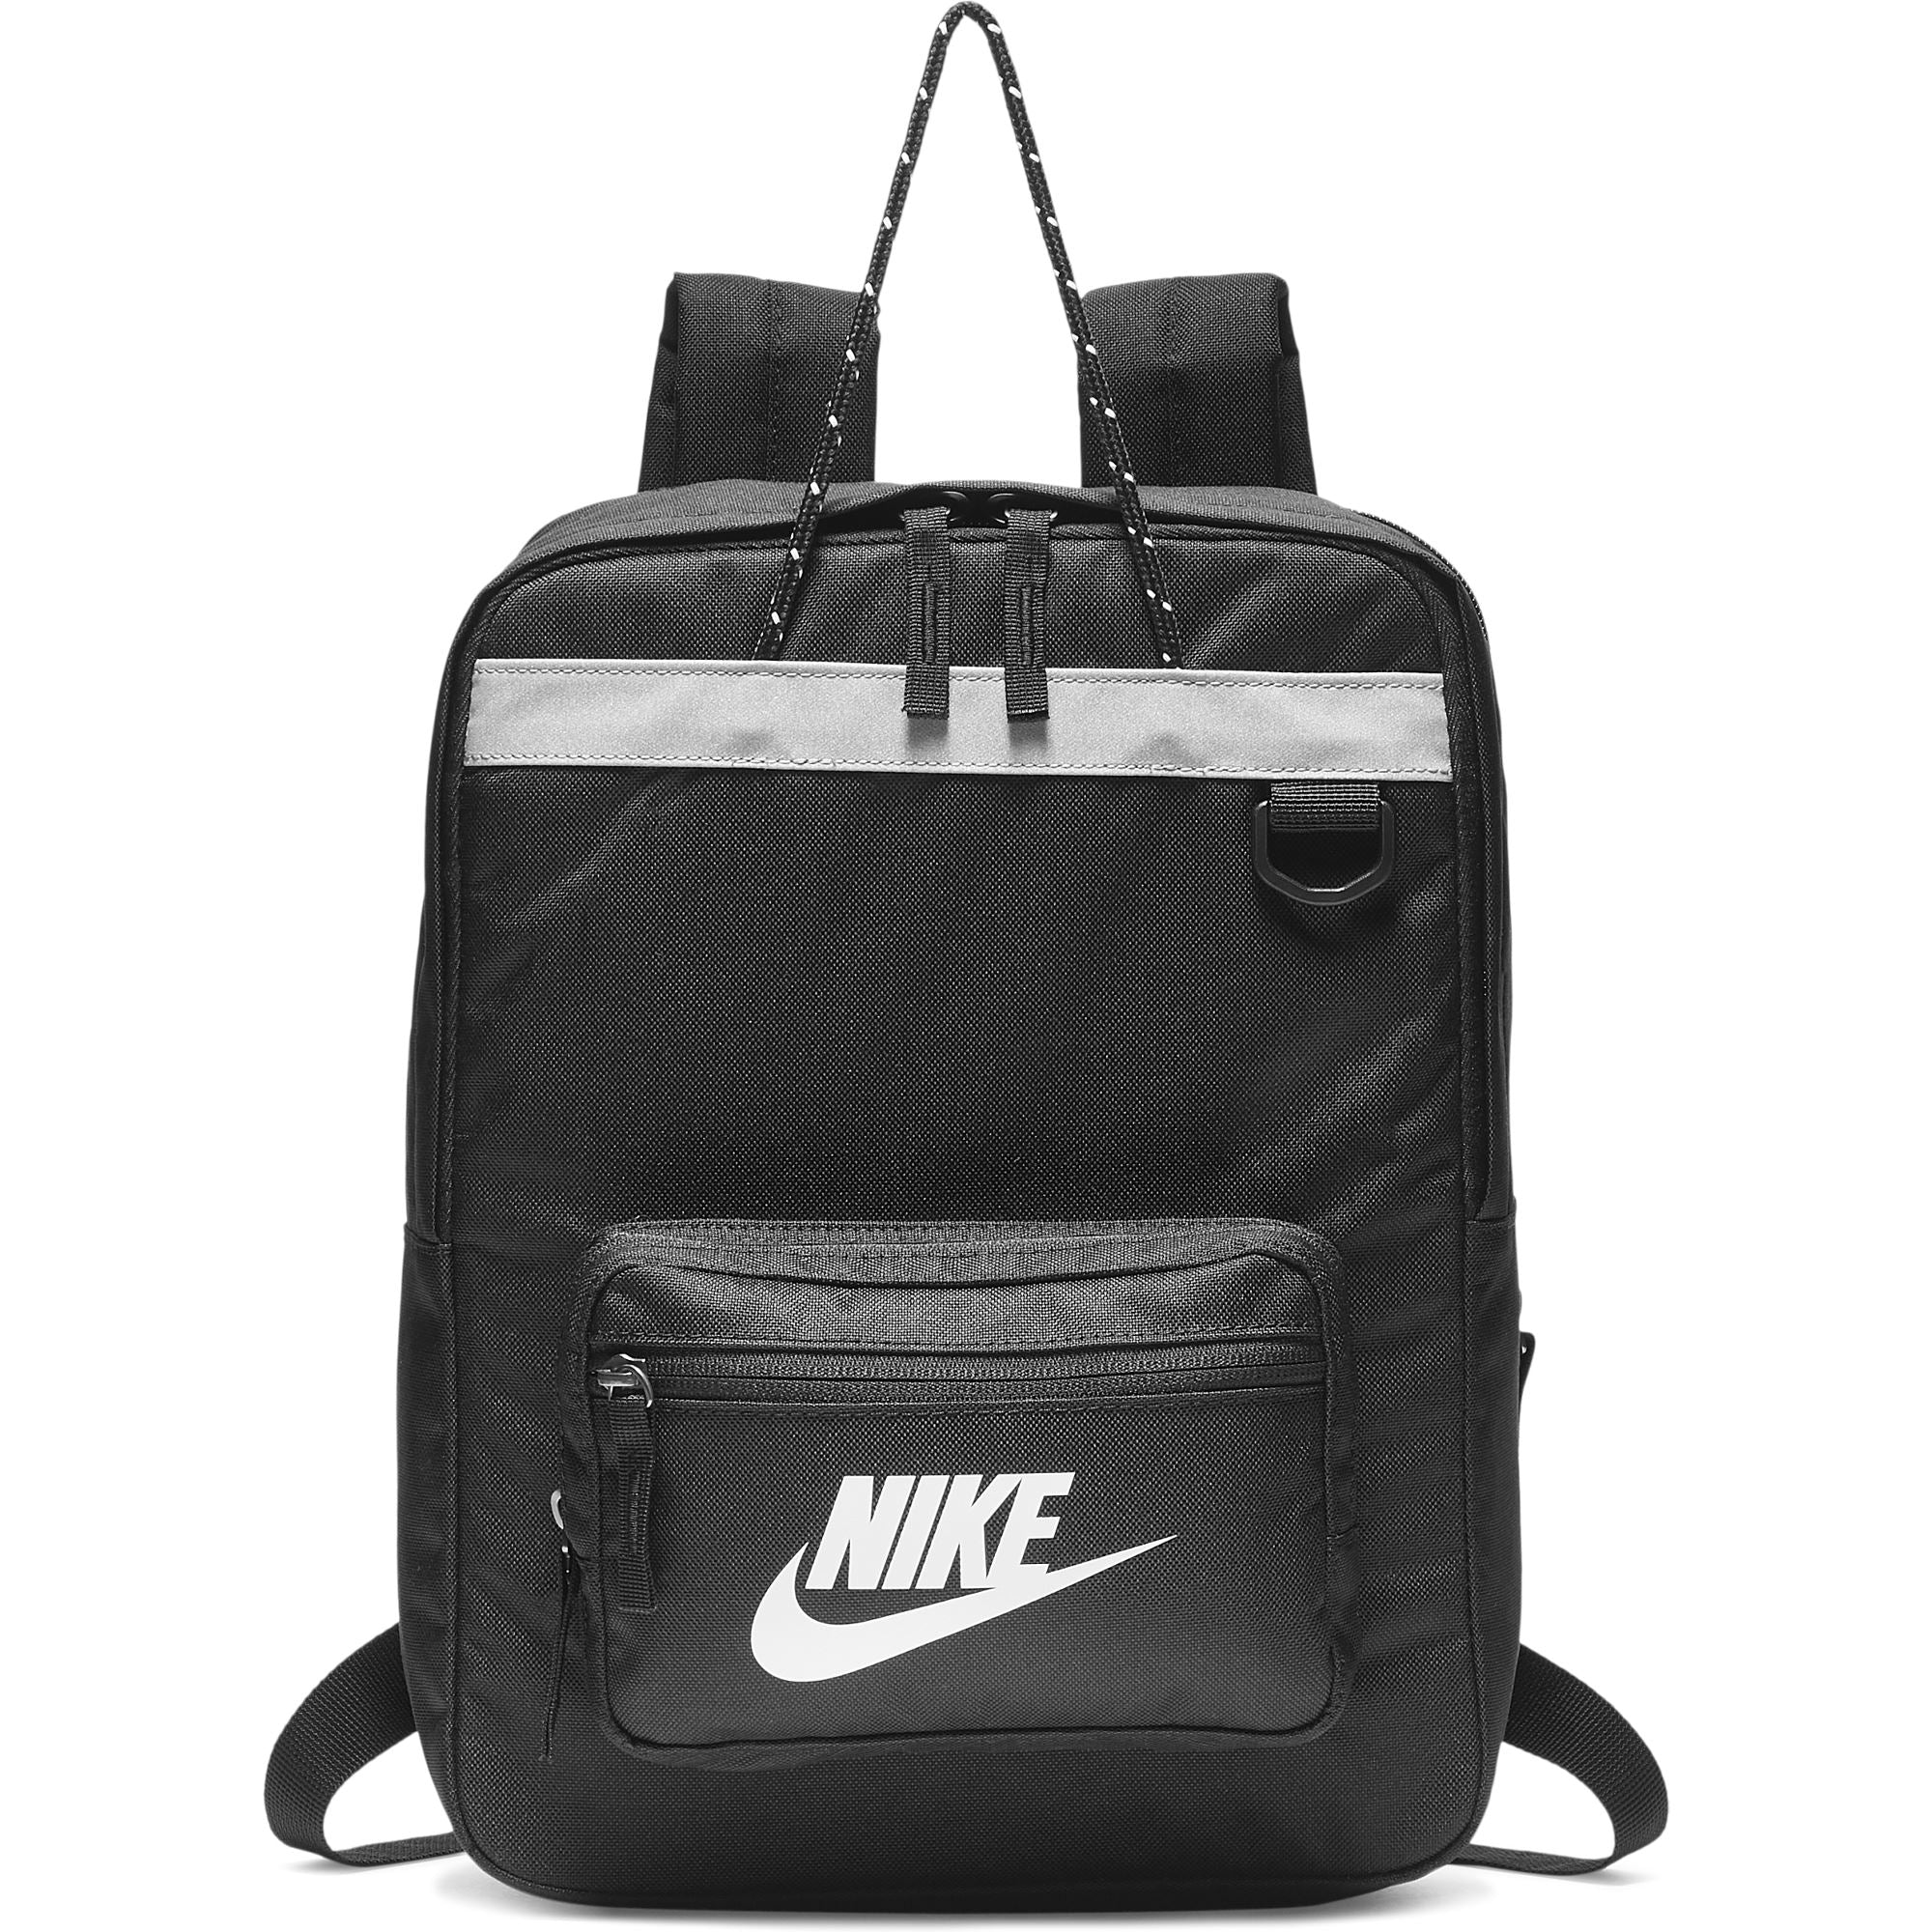 Nike Tanjun Backpack - Black/Black/White SP-Accessories-Bags Nike